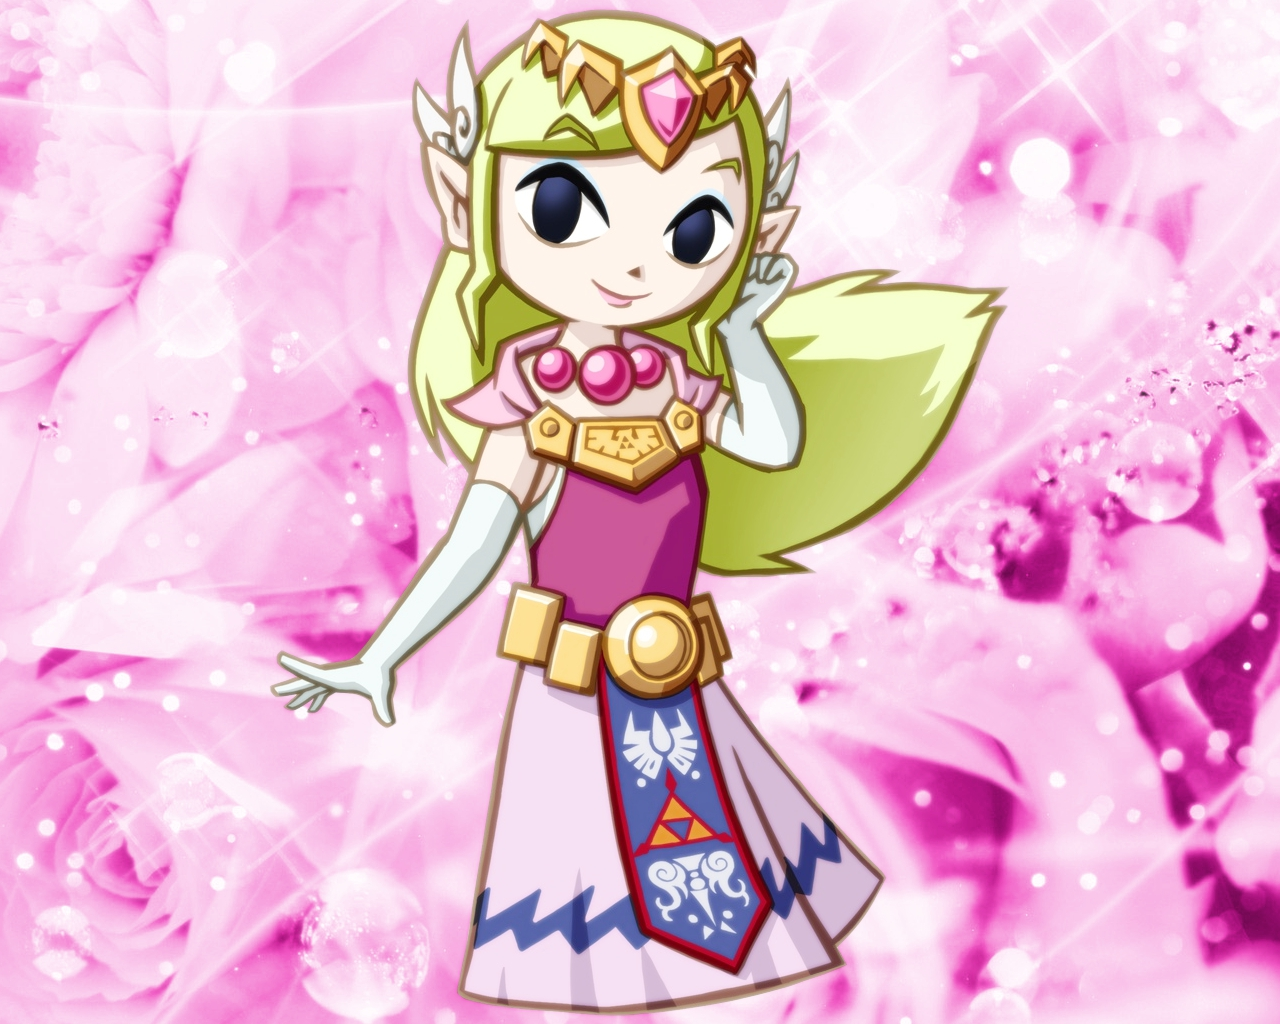 Princess Toon Zelda Flowers By PrincessZeldaLady